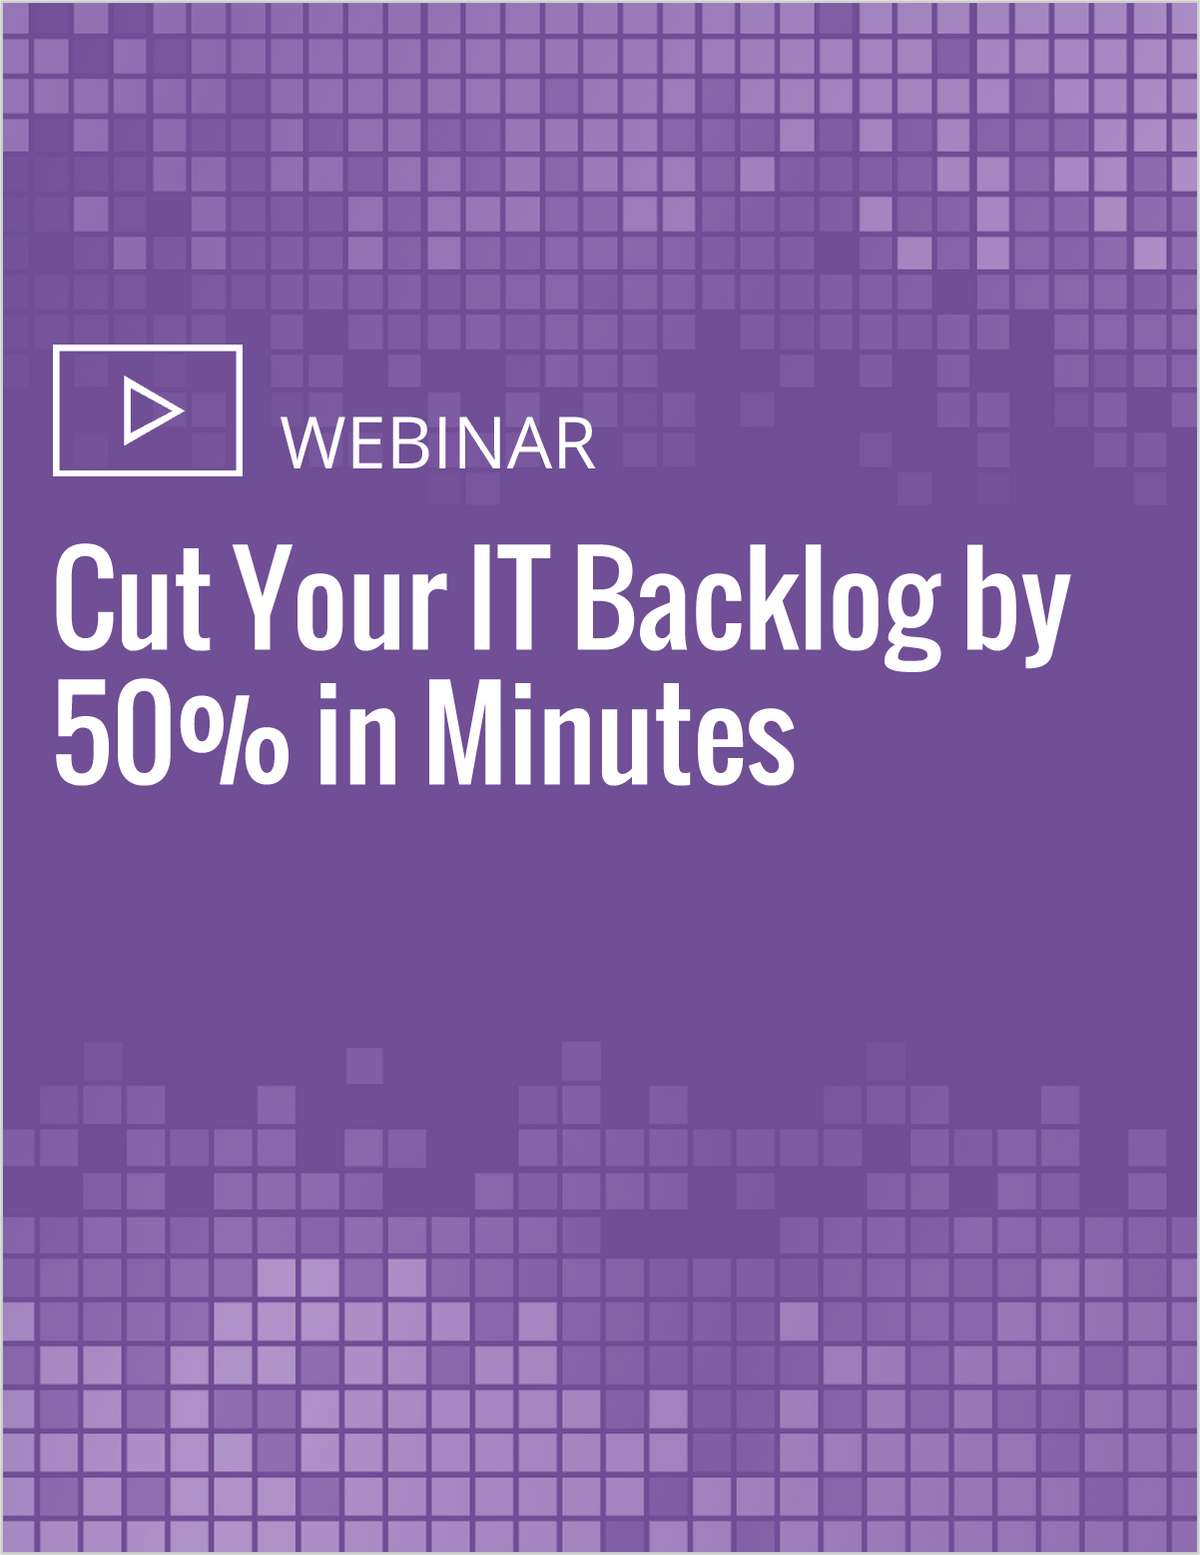 Recorded Webinar: Cut Your IT Backlog by 50% in Minutes